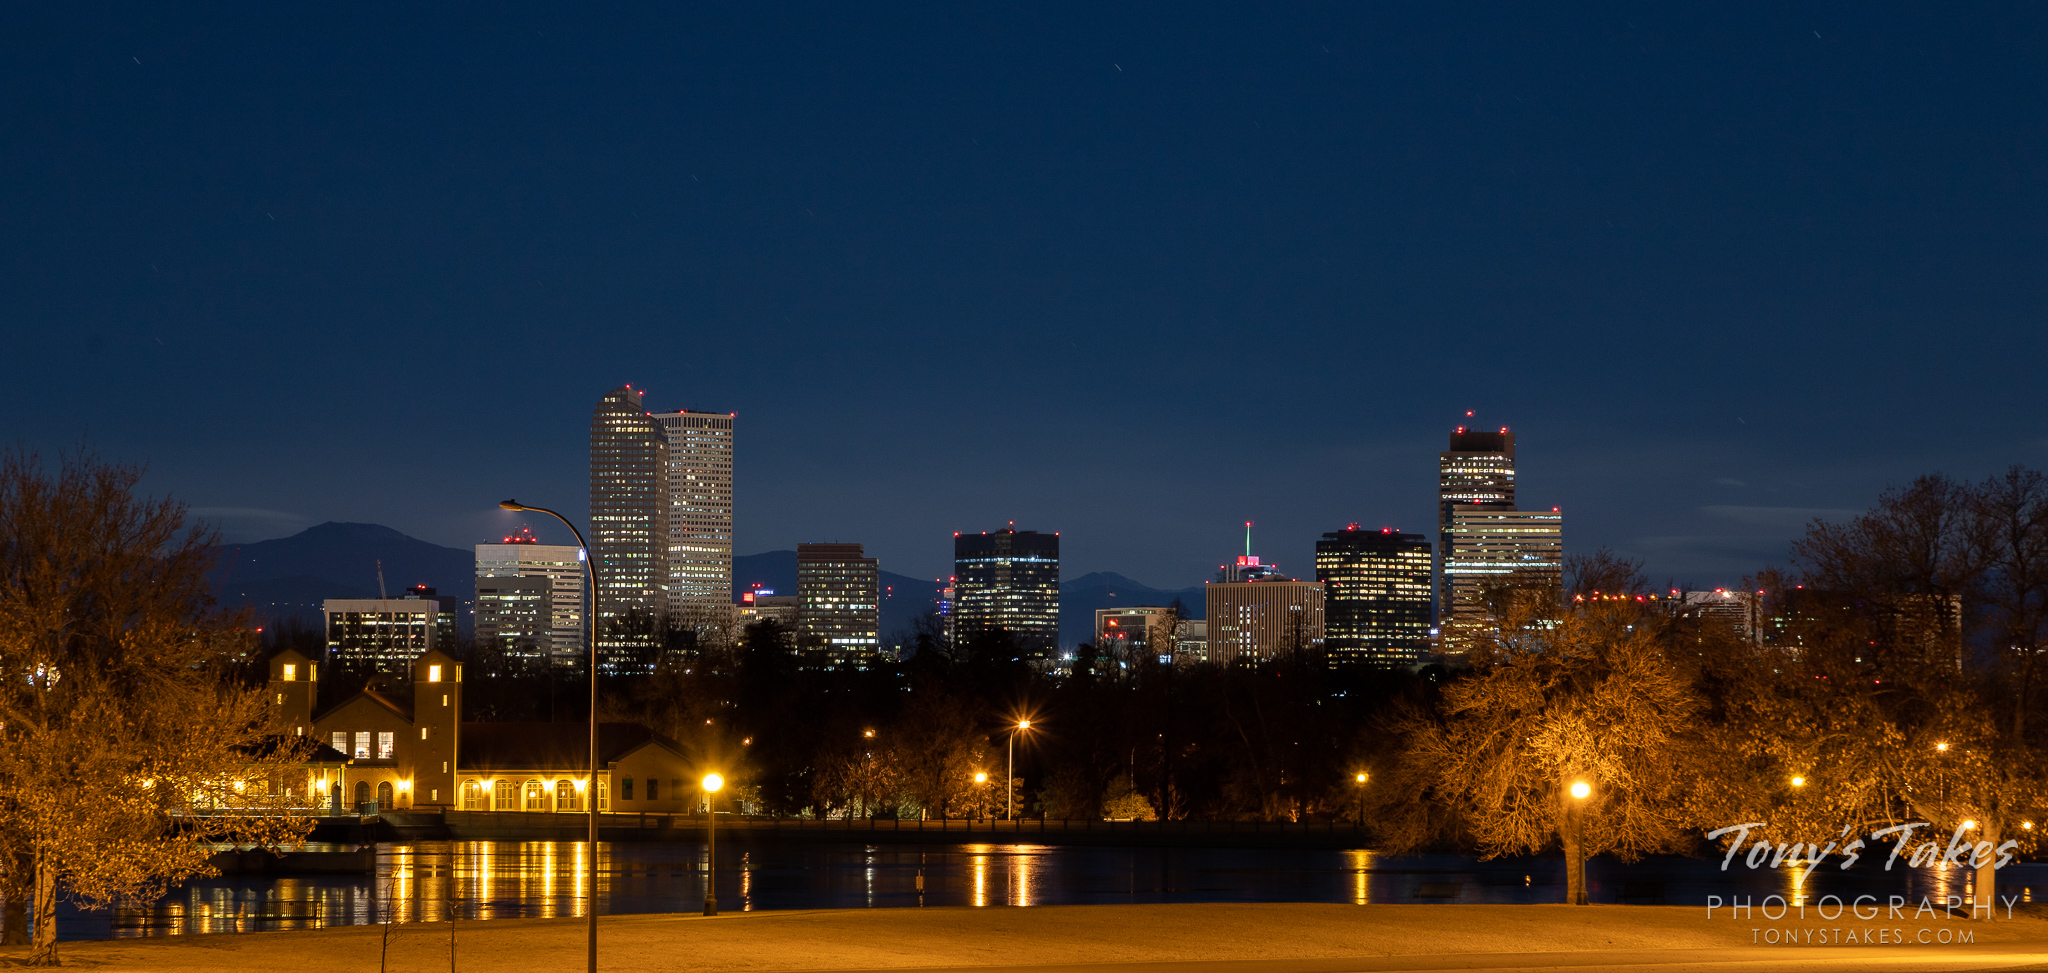 The nighttime skyline of Denver, Colorado as seen from City Park. (© Tony's Takes)